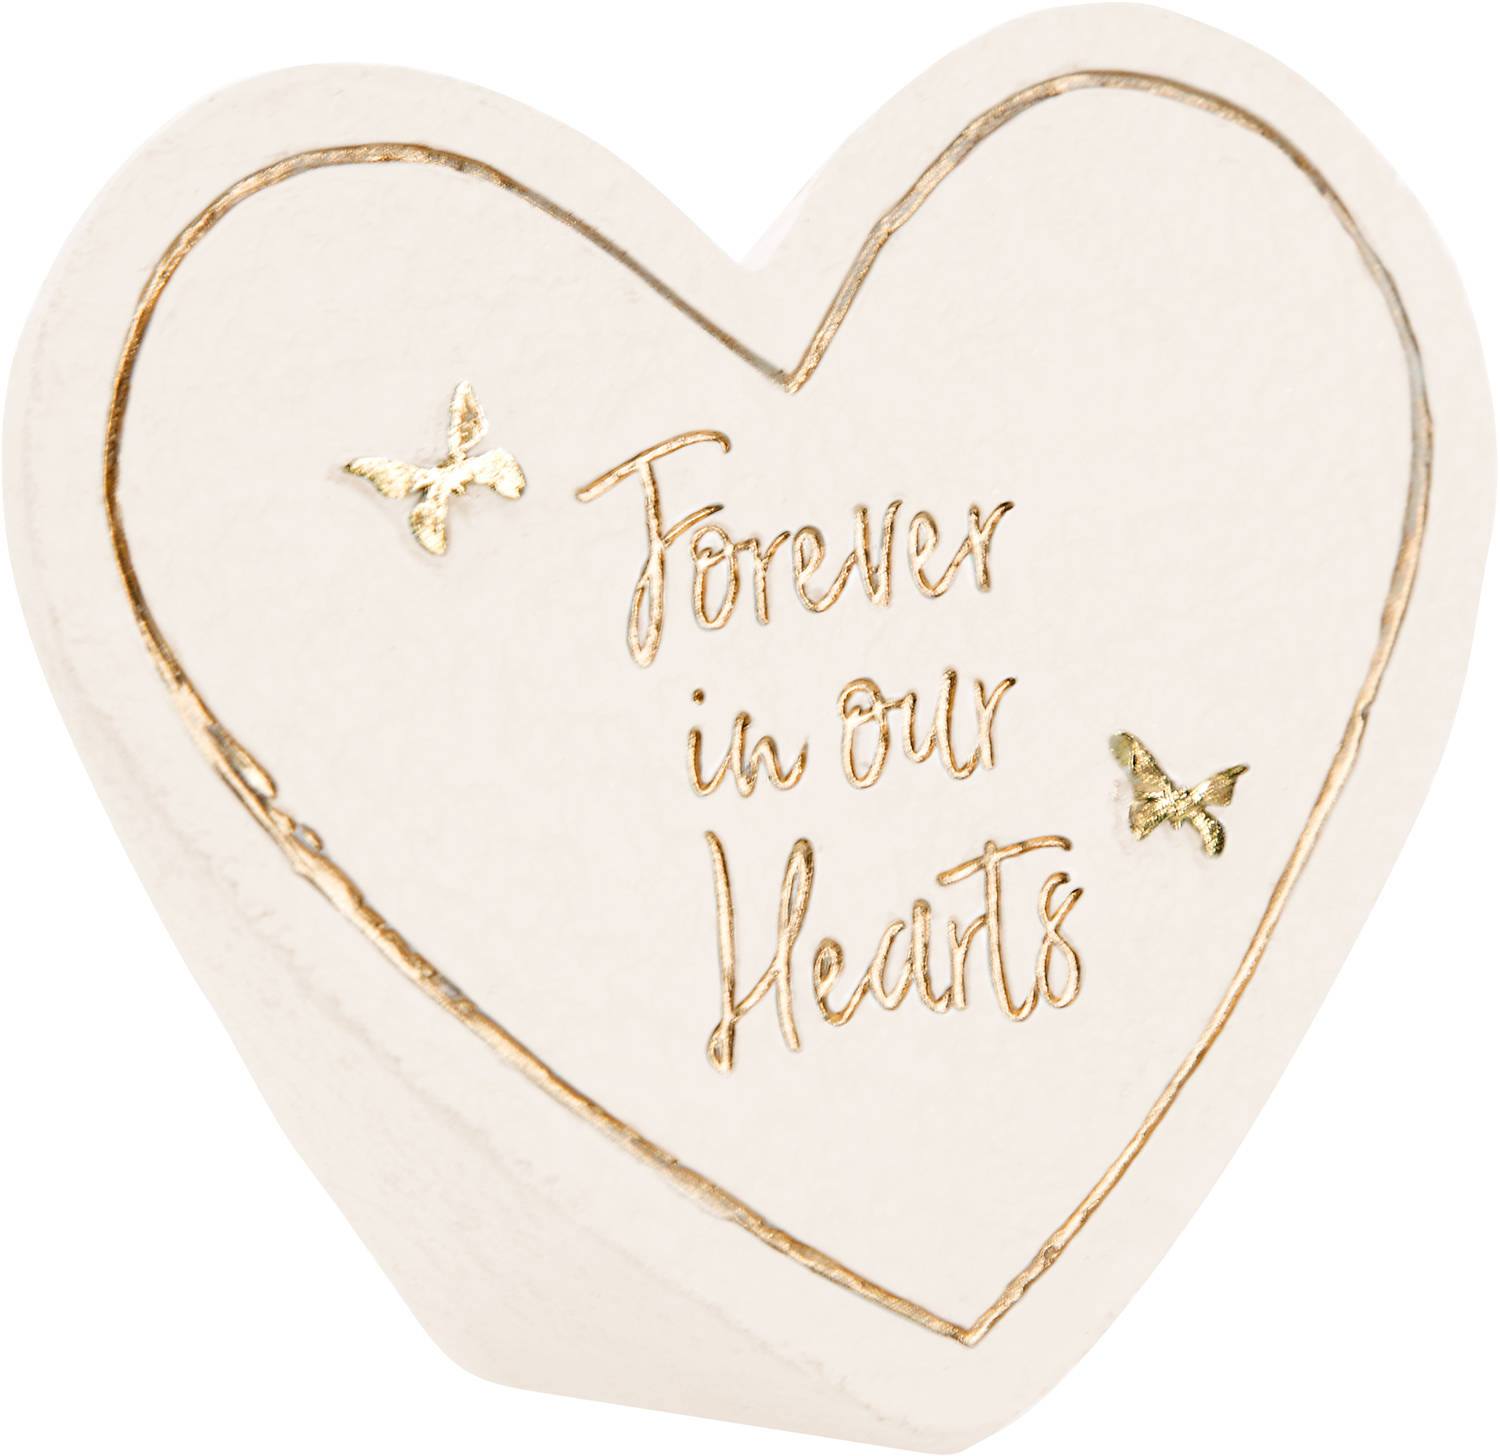 "Forever by Forever in our Hearts - Forever - 3.5"" x 3"" Heart Memorial Stone"